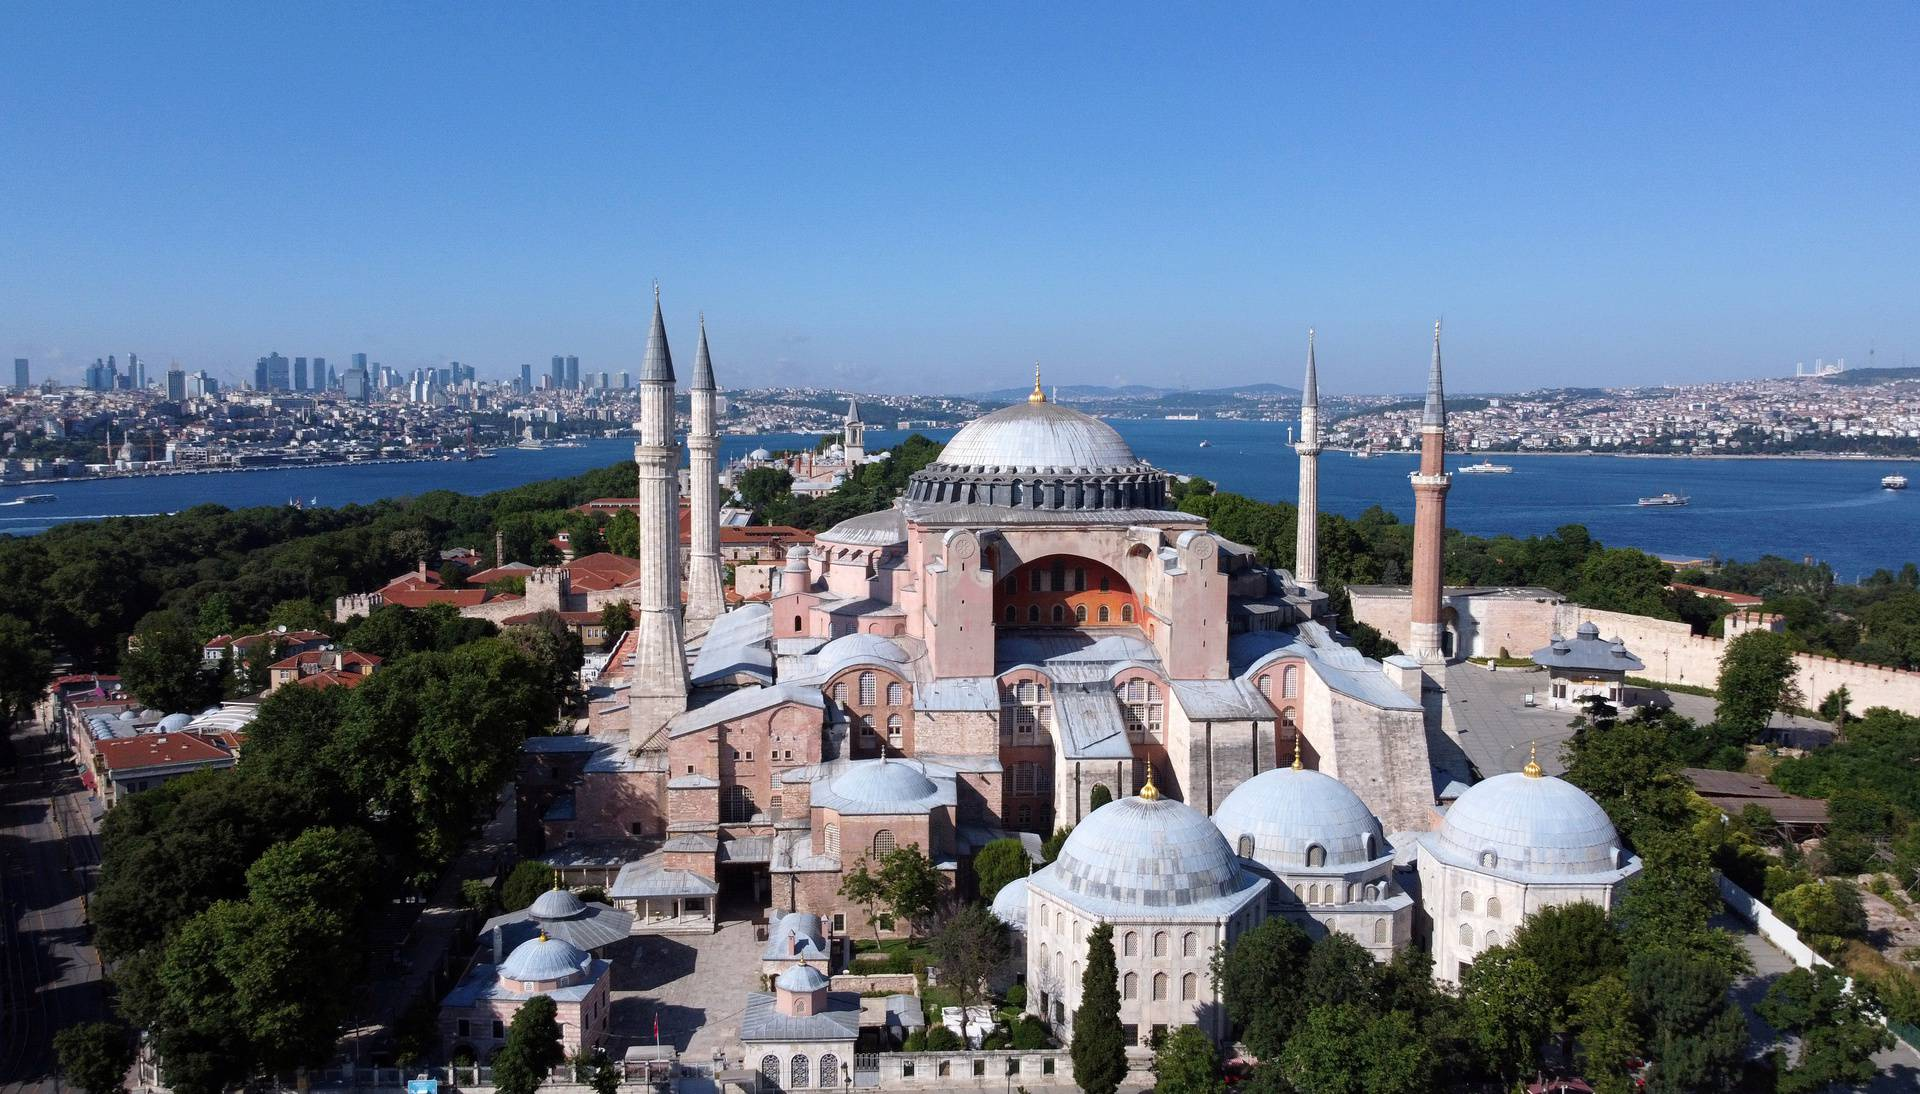 FILE PHOTO: Hagia Sophia or Ayasofya is seen in Istanbul